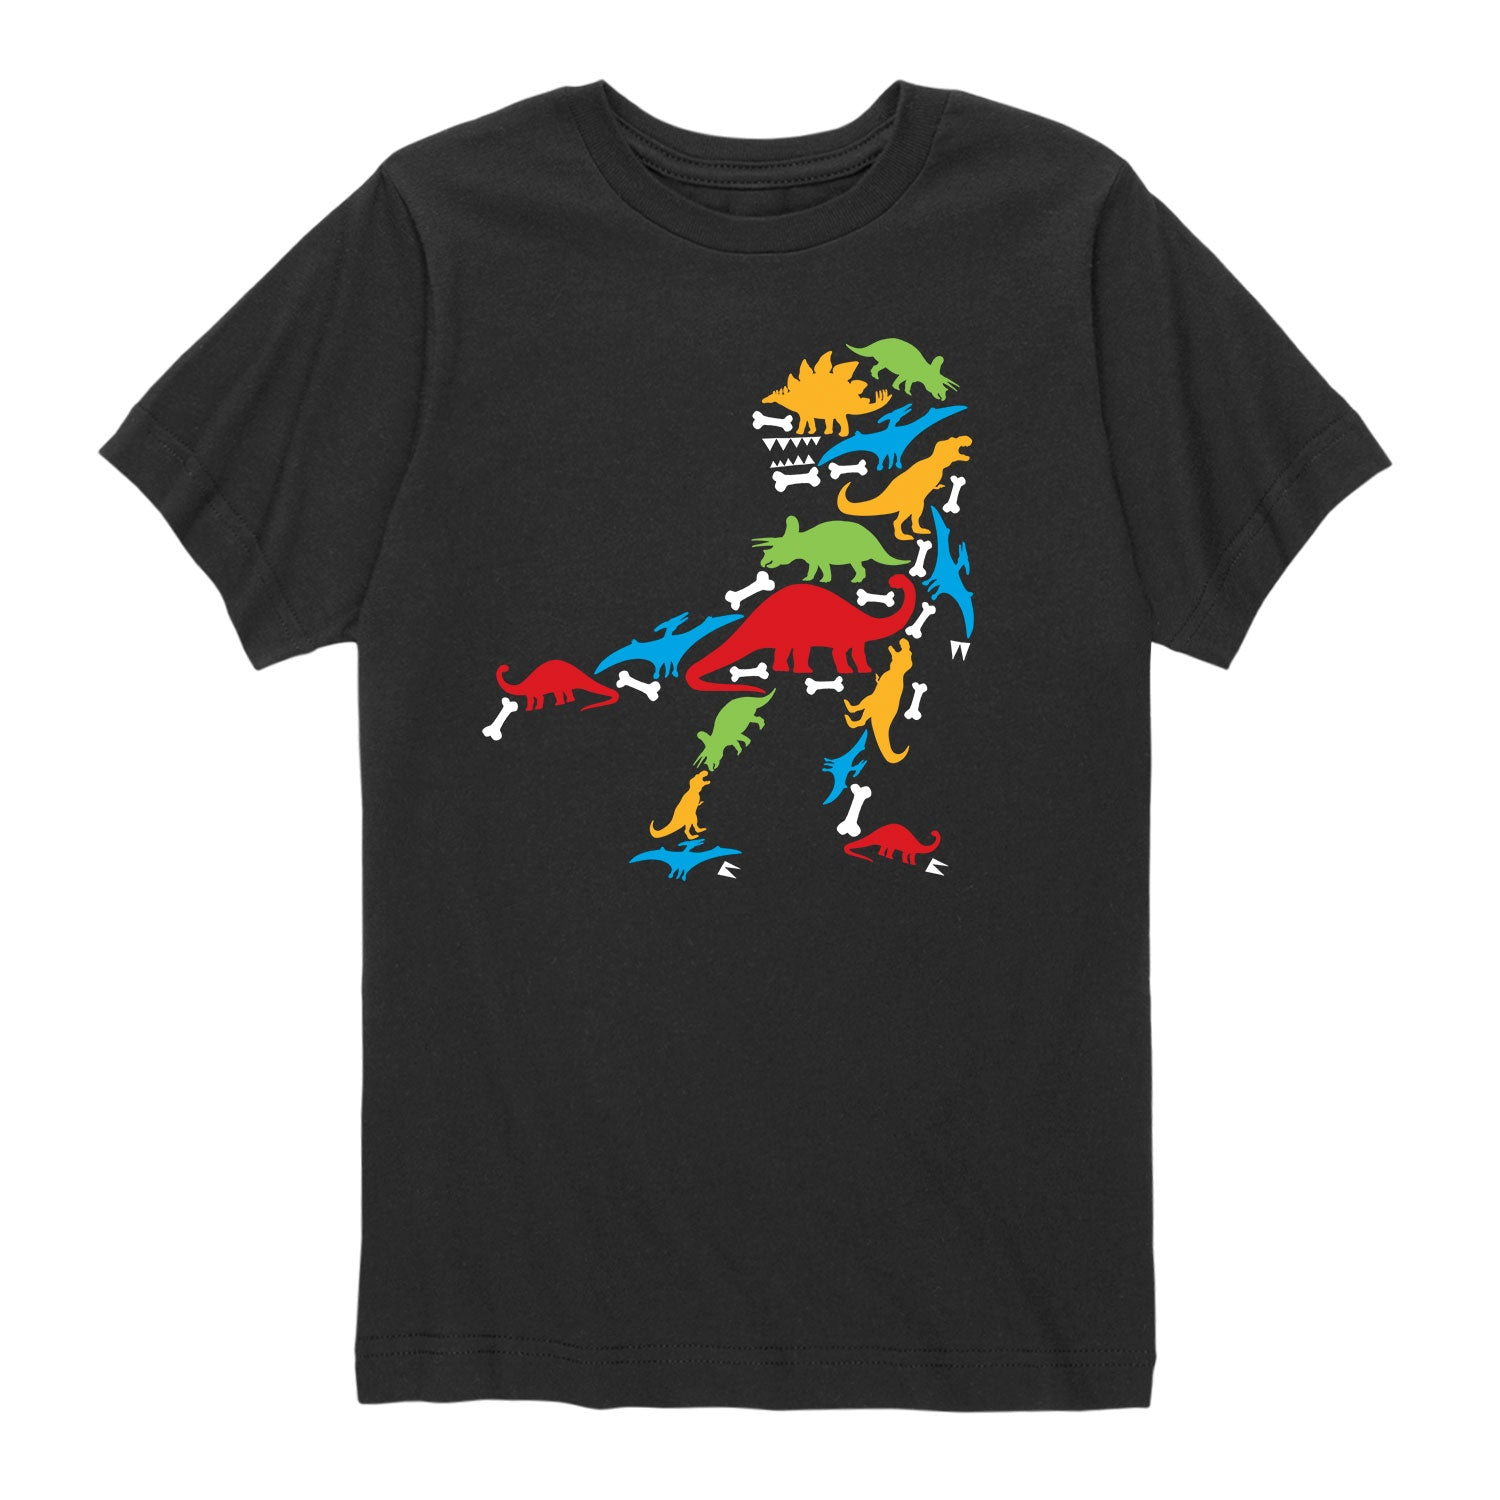 Dino Made of Dinos - Toddler Short Sleeve T-Shirt